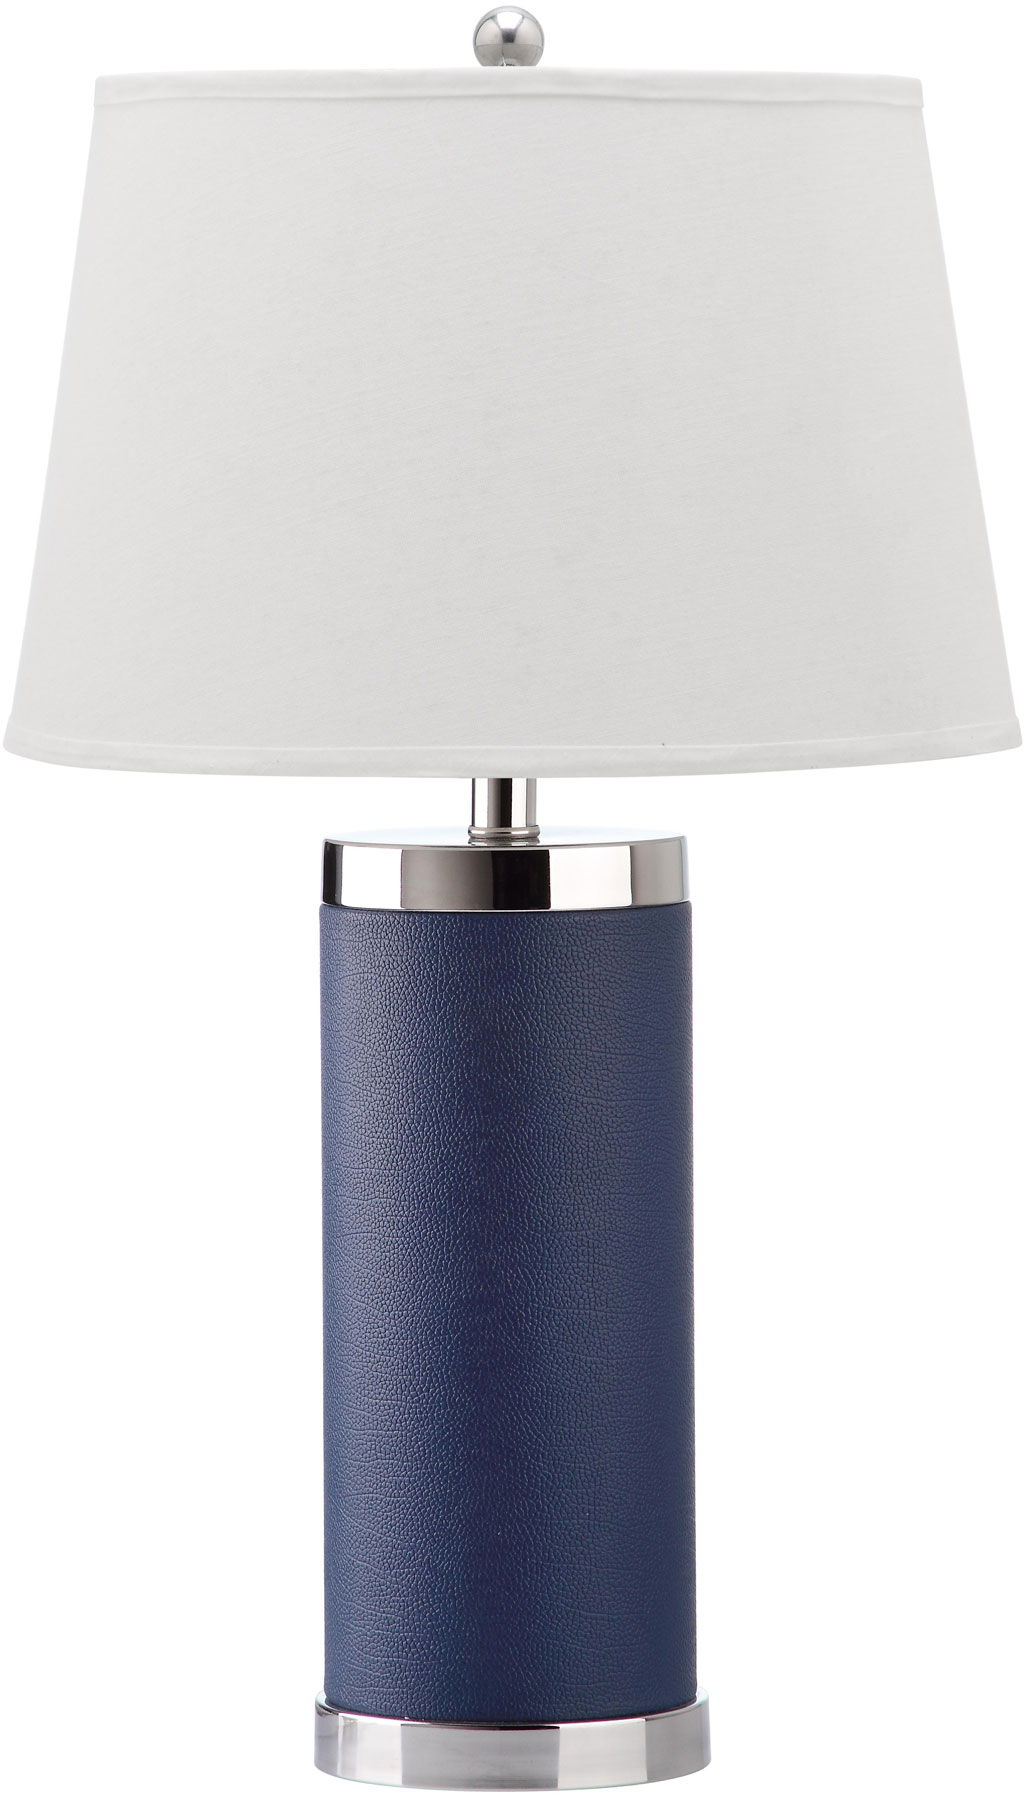 Lit4144a set2 table lamps lighting by safavieh leather column table lamp lit4144a set2 aloadofball Gallery